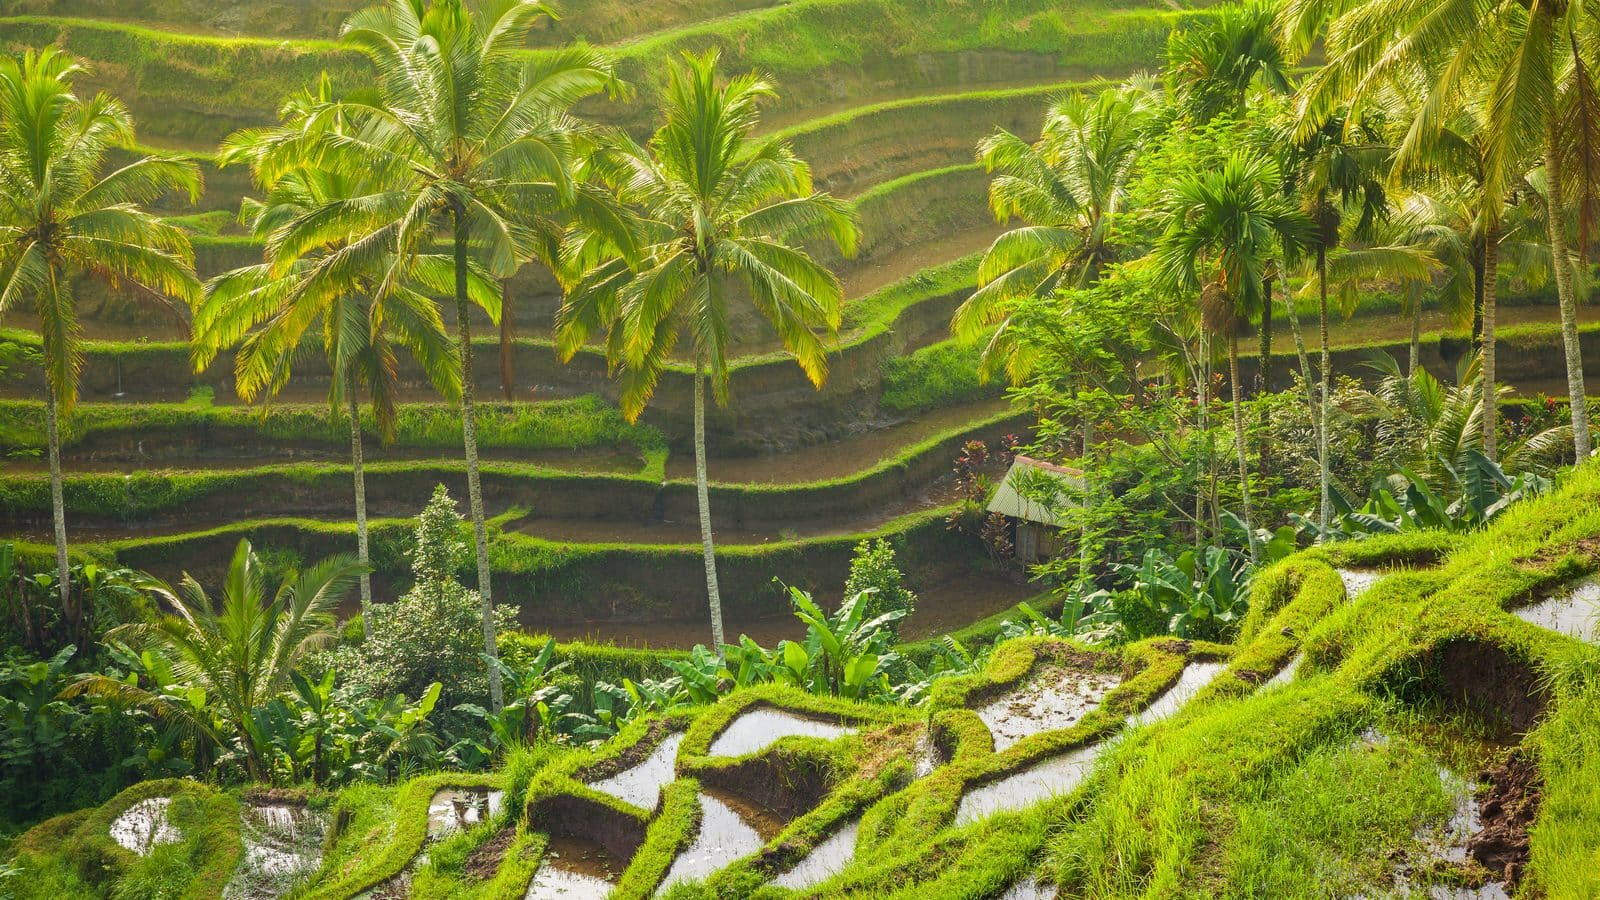 Window to the world: Ubud, Bali